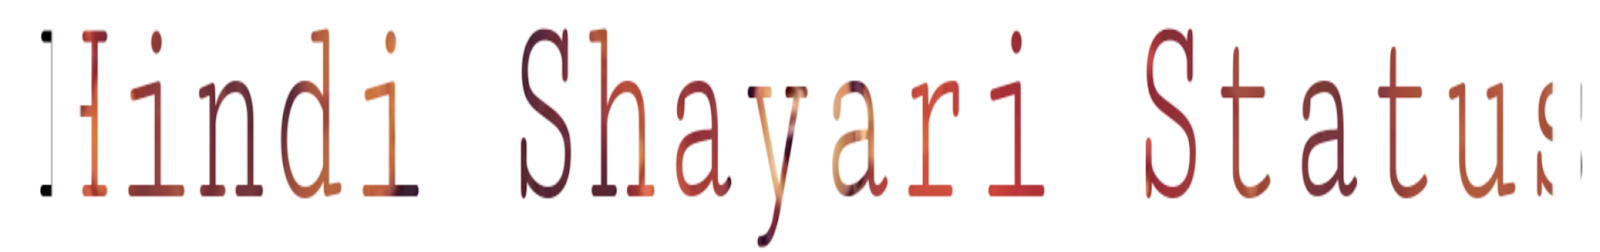 Hindi Shayari Status - Latest Shayari Status In Hindi